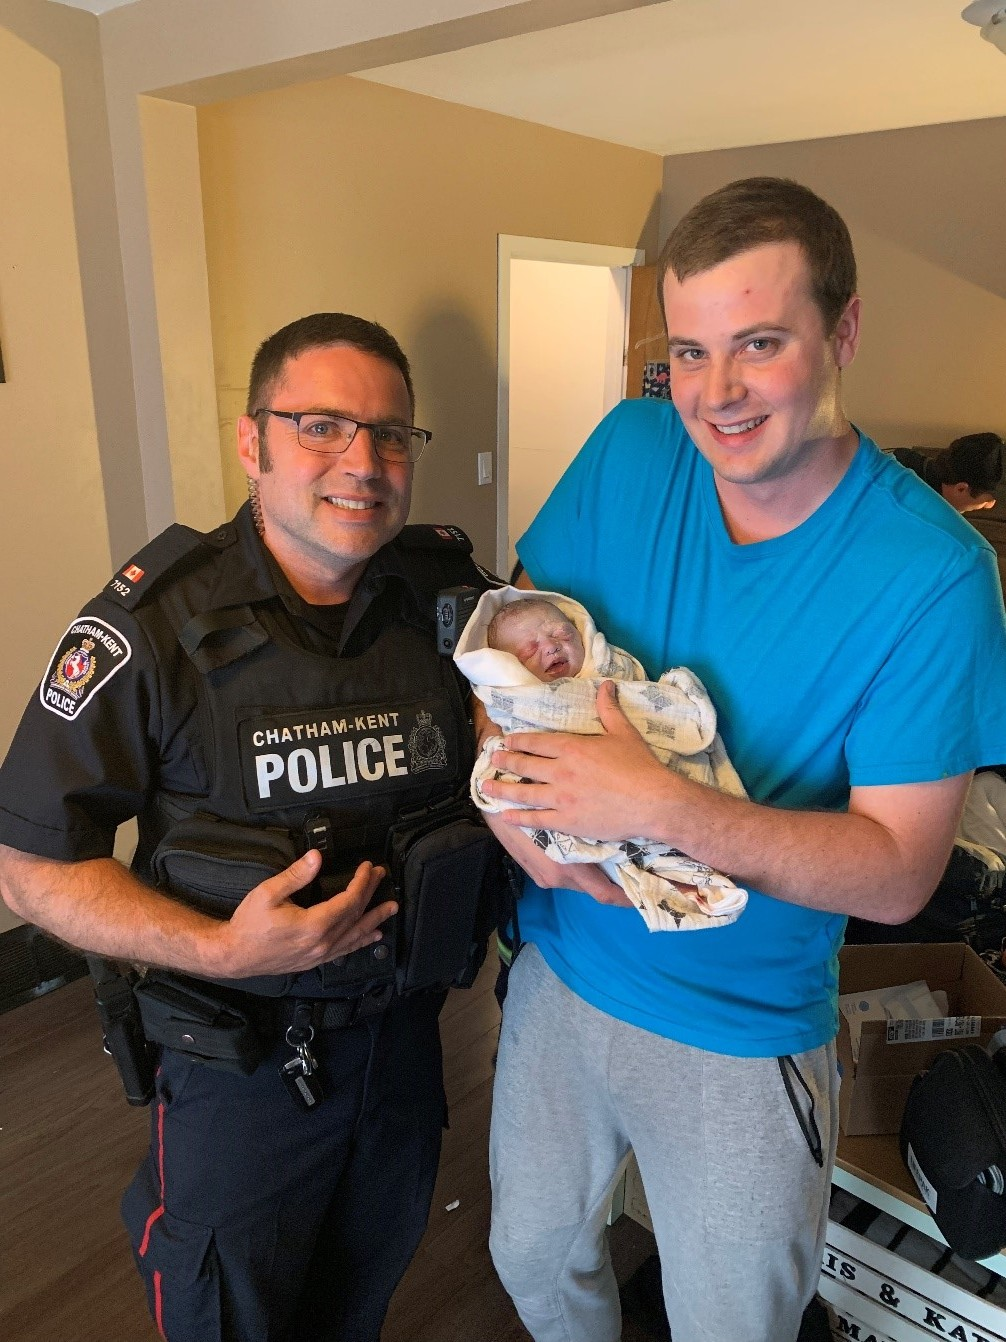 PC Oriet and baby